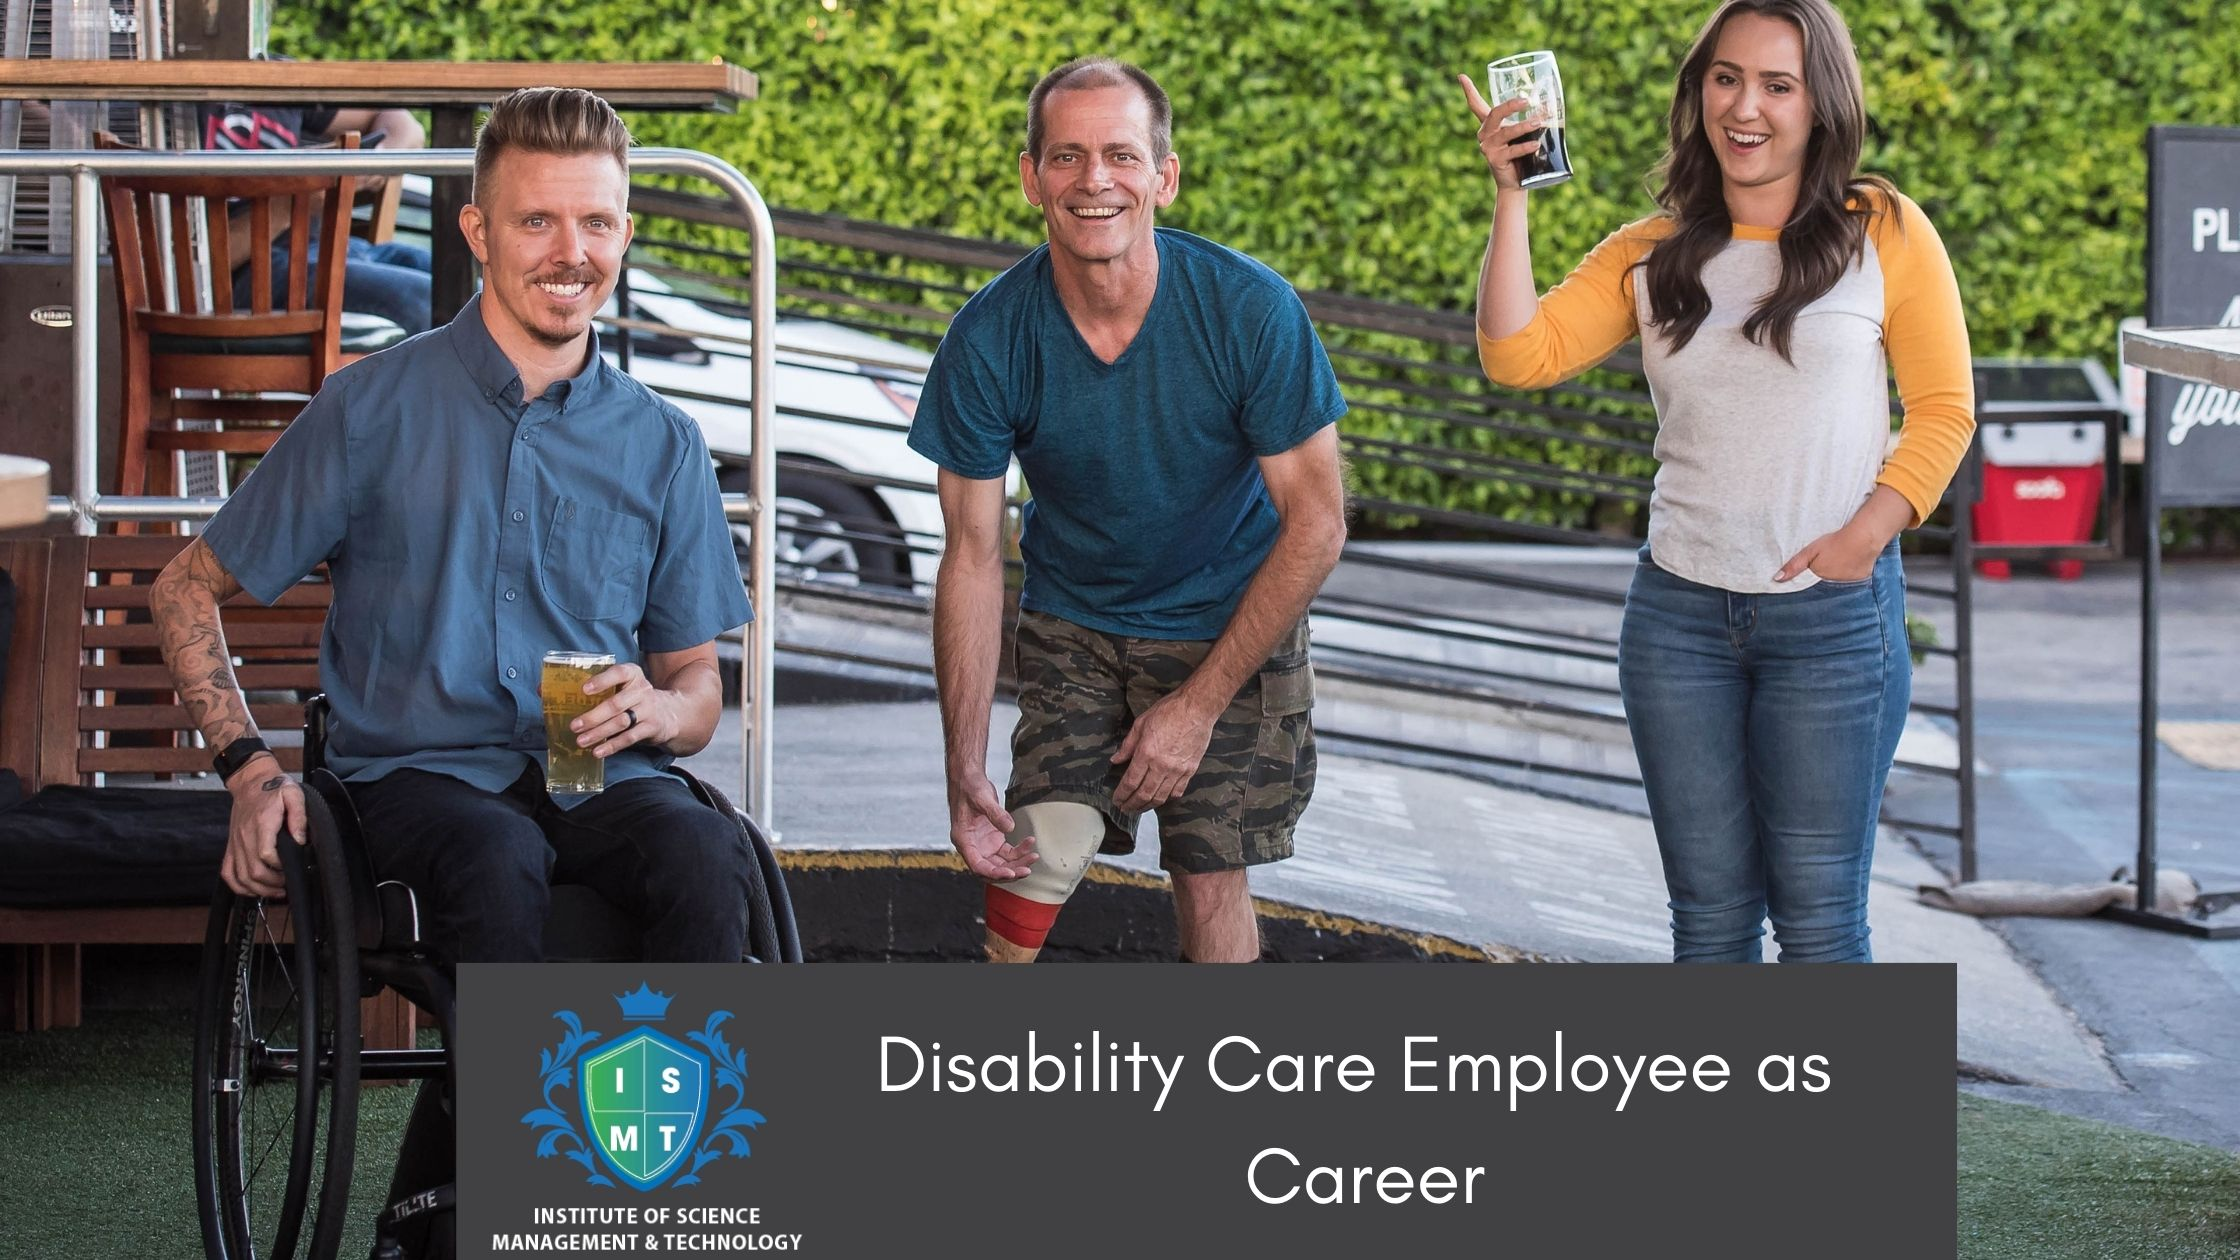 Disability Care Employee as Career